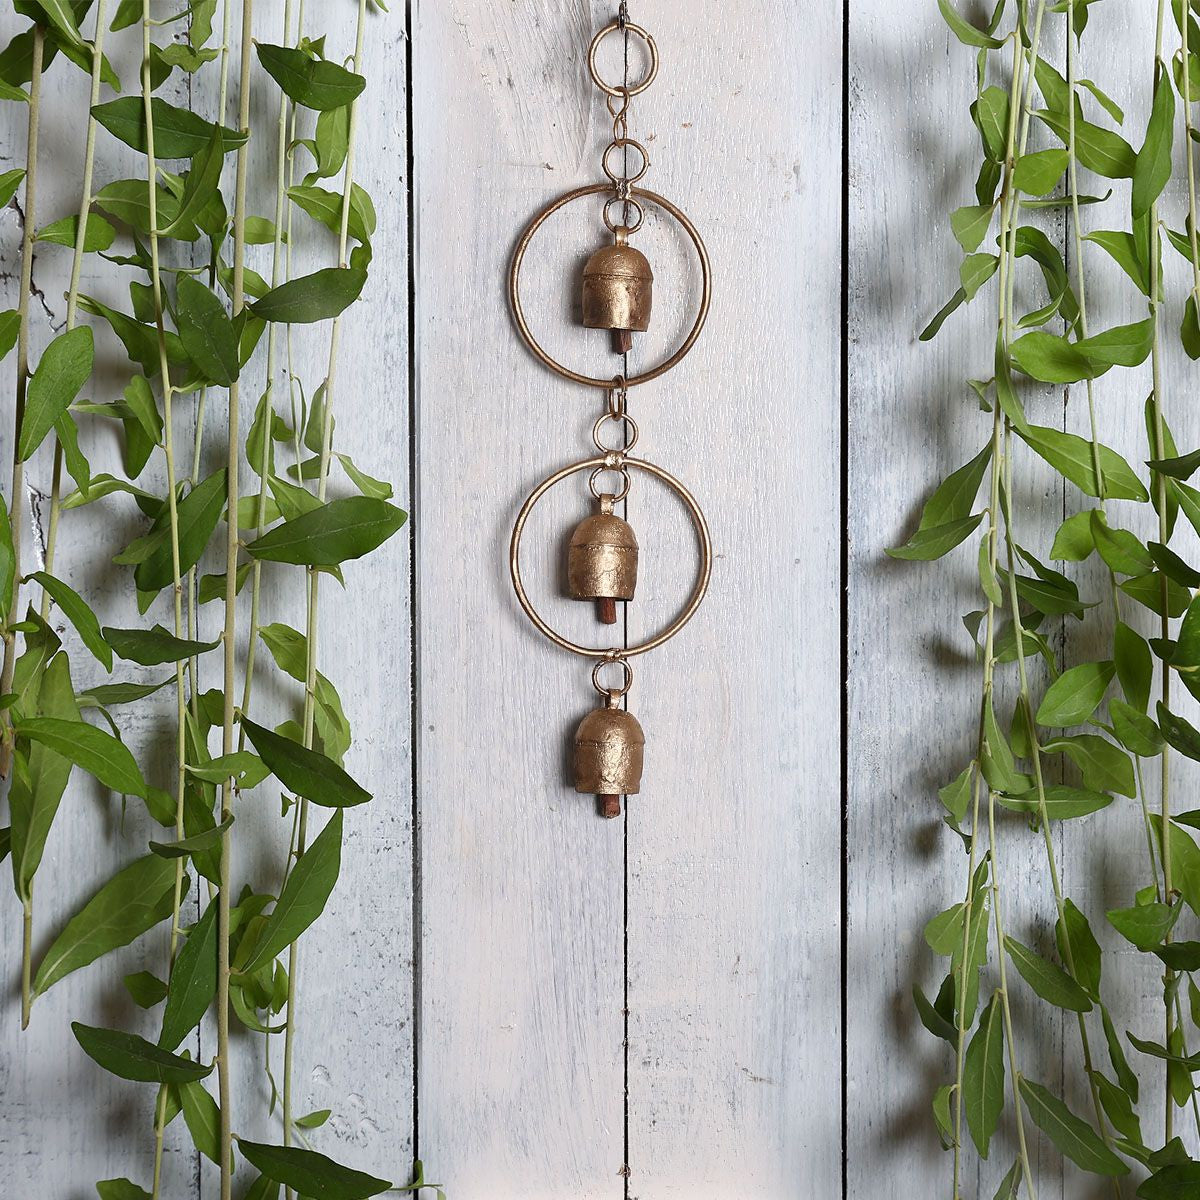 Kutch Metal Bell Wind Chimes - 3 Bell Circle Design